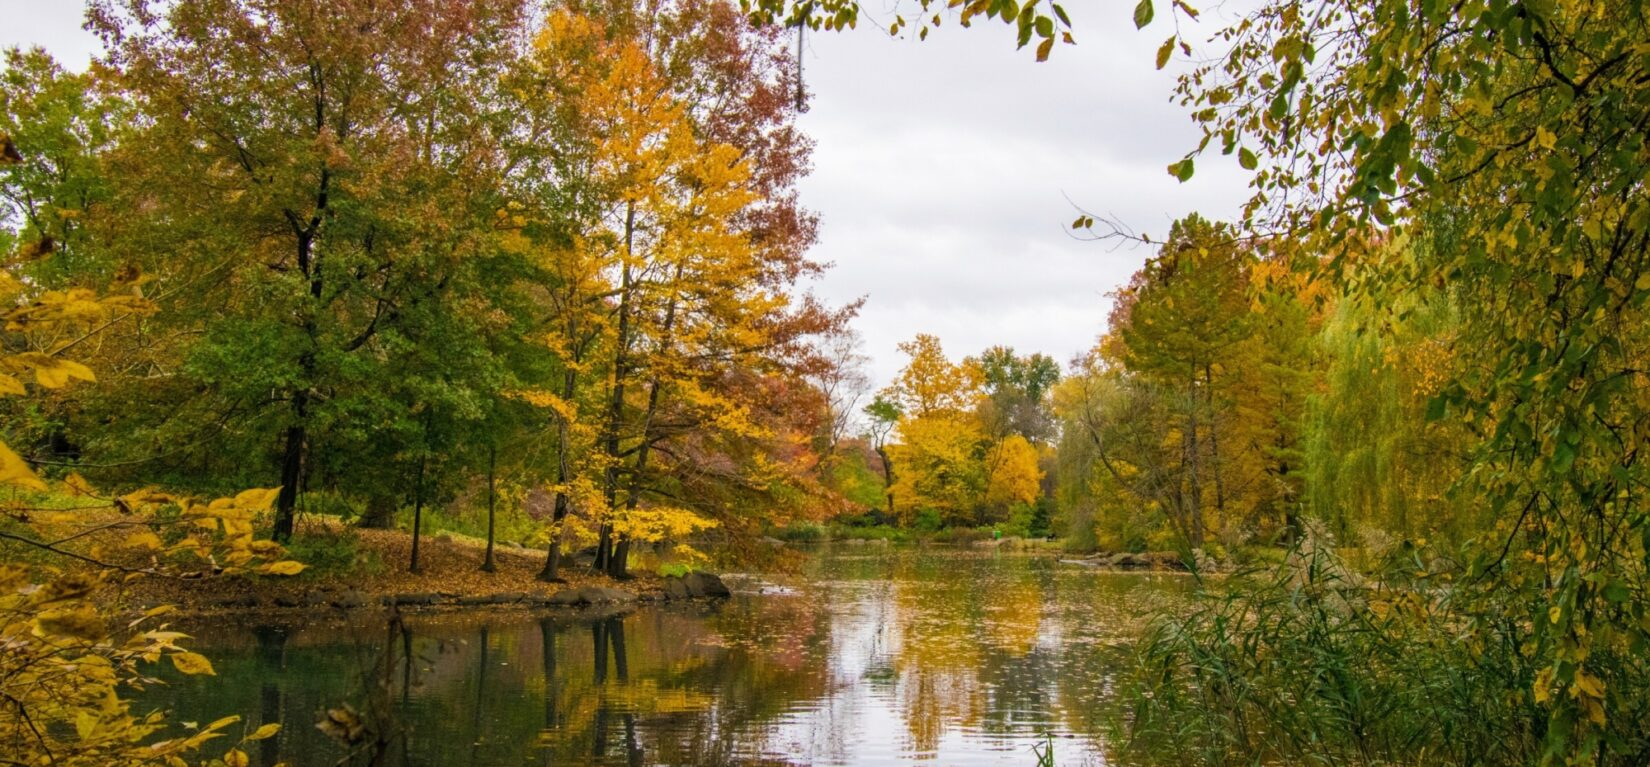 A view across the still waters of the pool, reflecting the autumn-colored leaves of the trees along its banks.